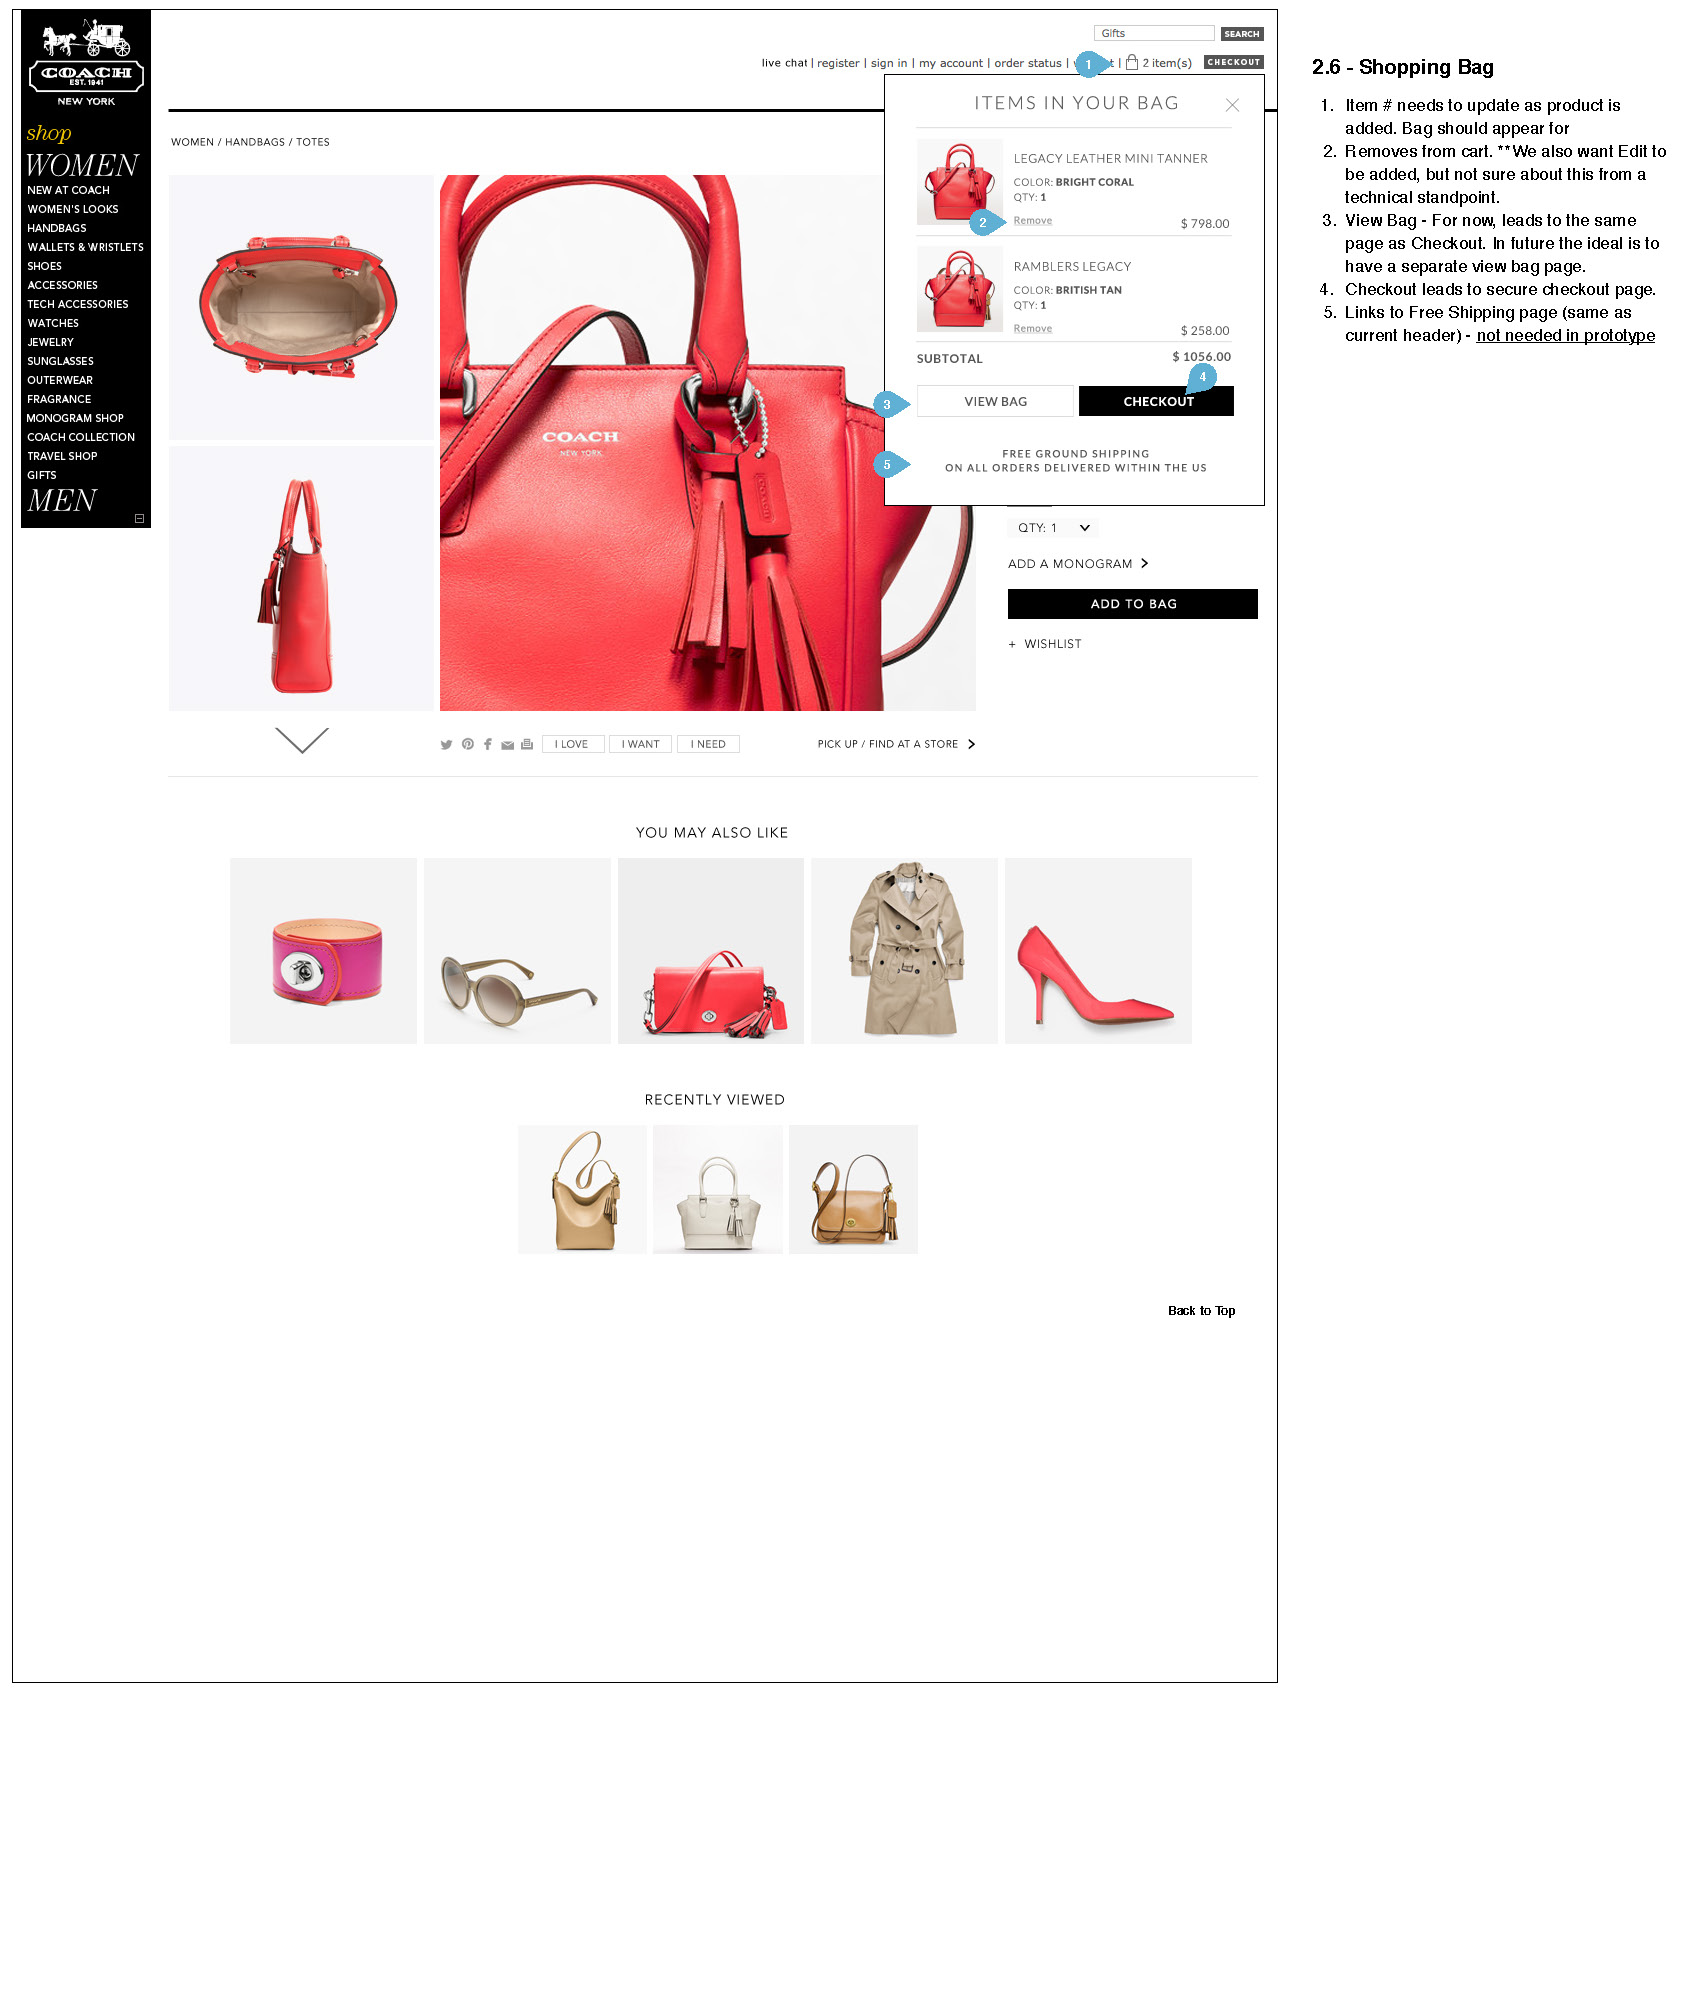 Productpage-v2.4_Page_6.jpg